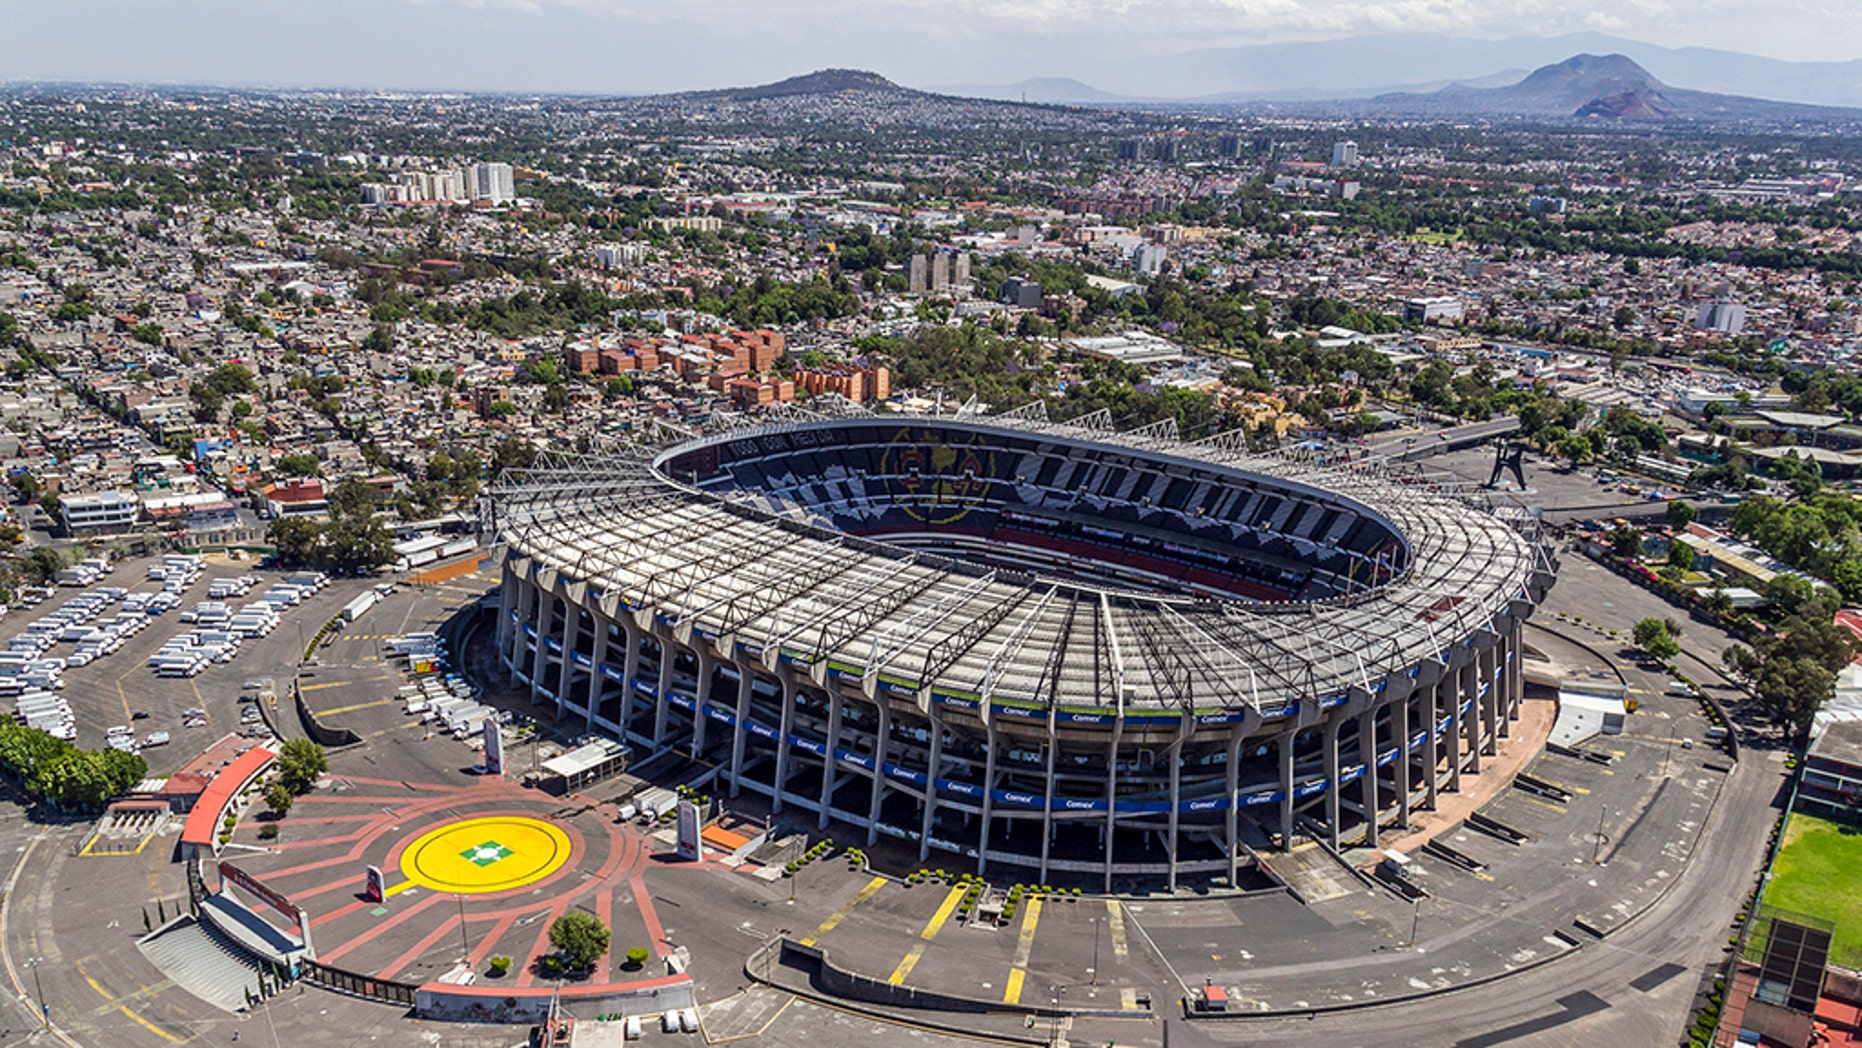 Estadio Azteca in Mexico City has hosted soccer matches, concerts and three regular season NFL games.